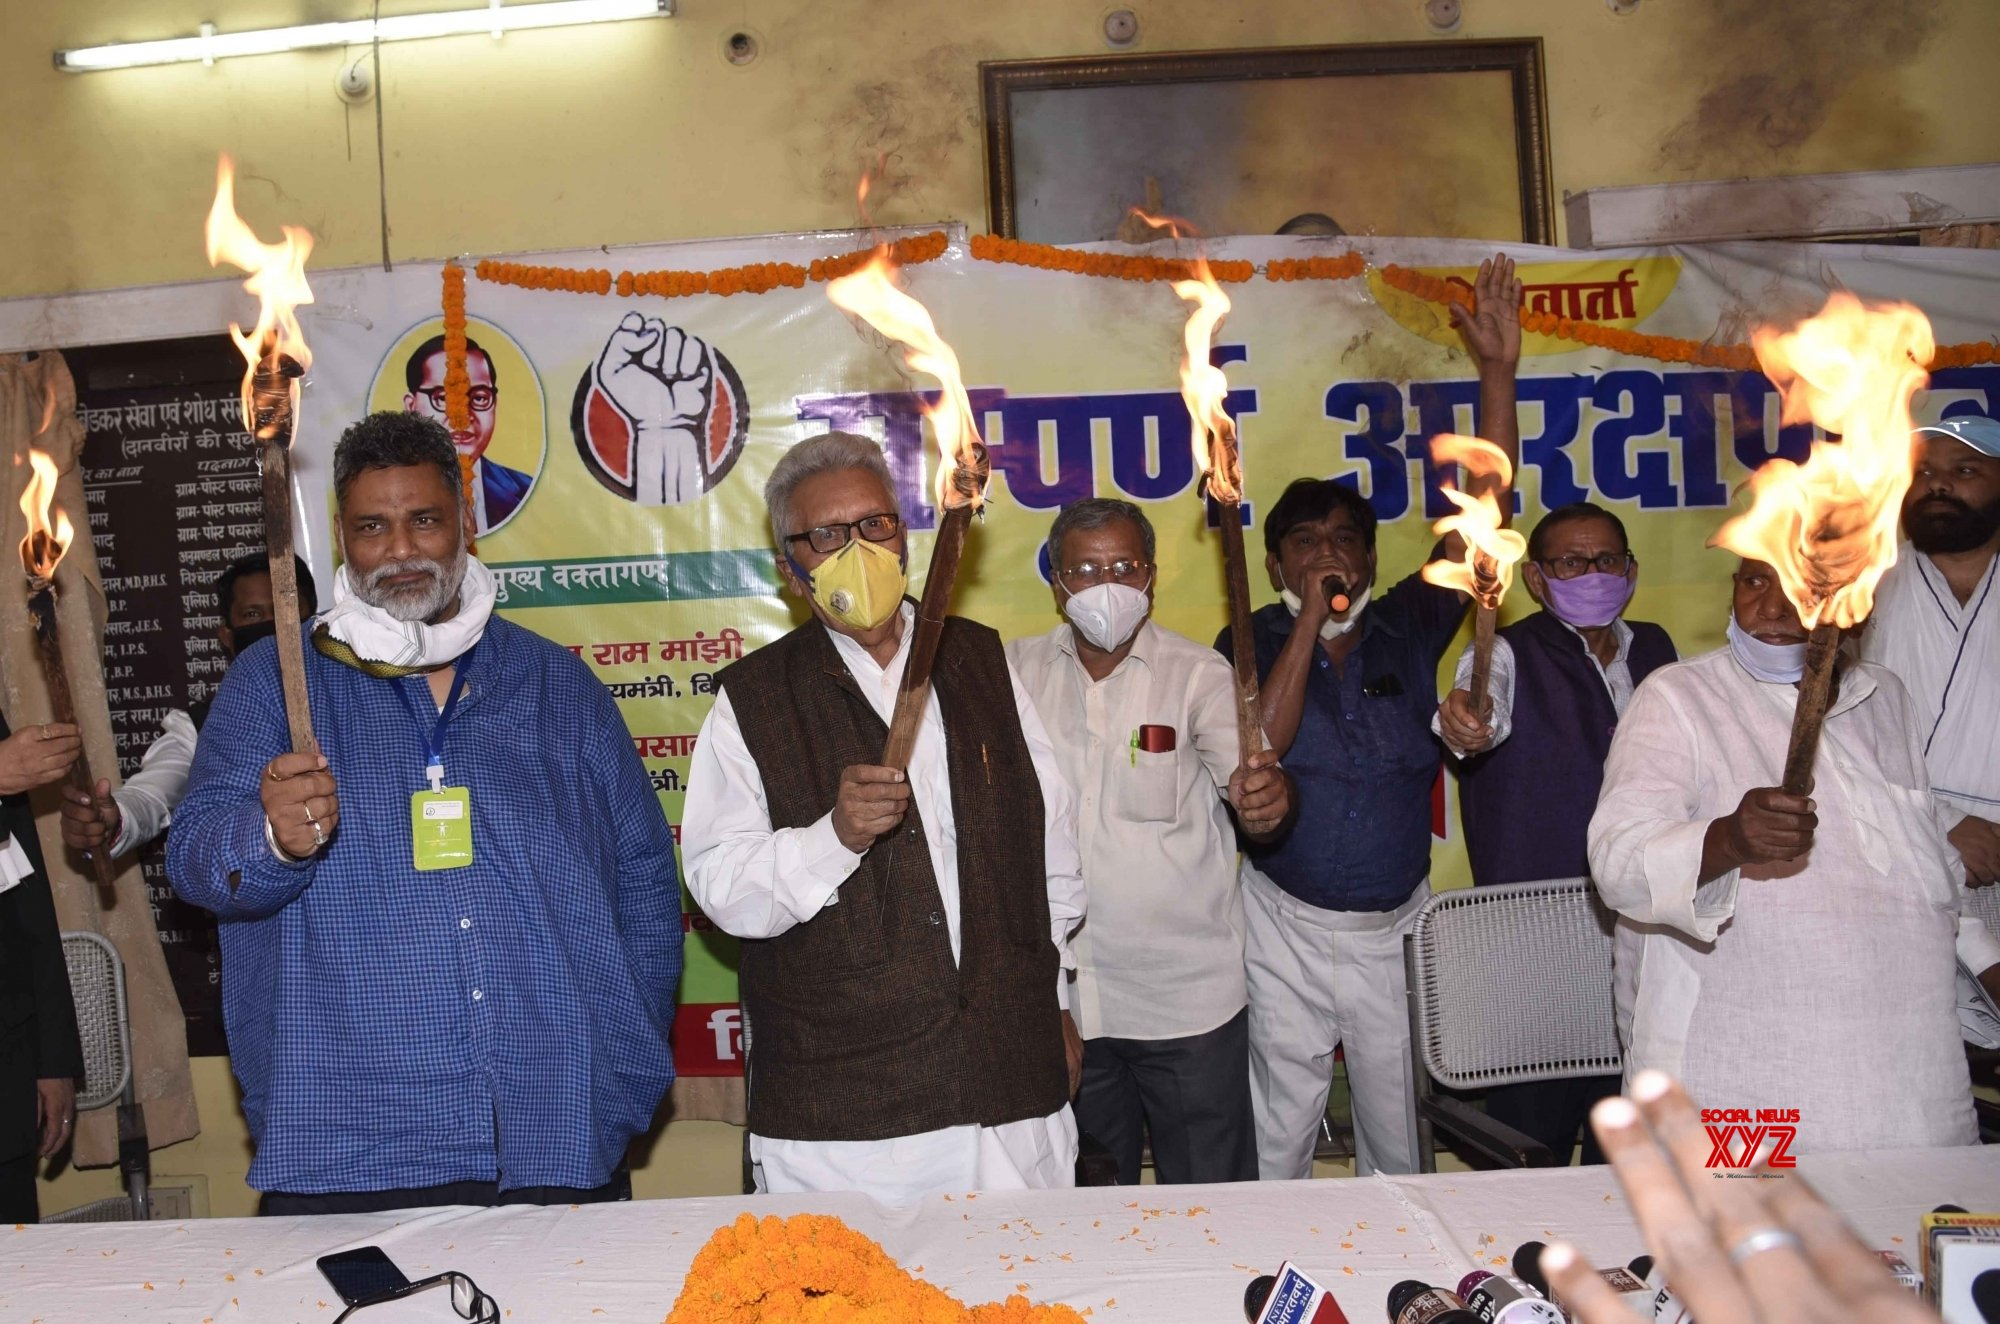 Patna: Jan Adhikar Party launches 'Sampoorn Arakshan - Kranti' #Gallery